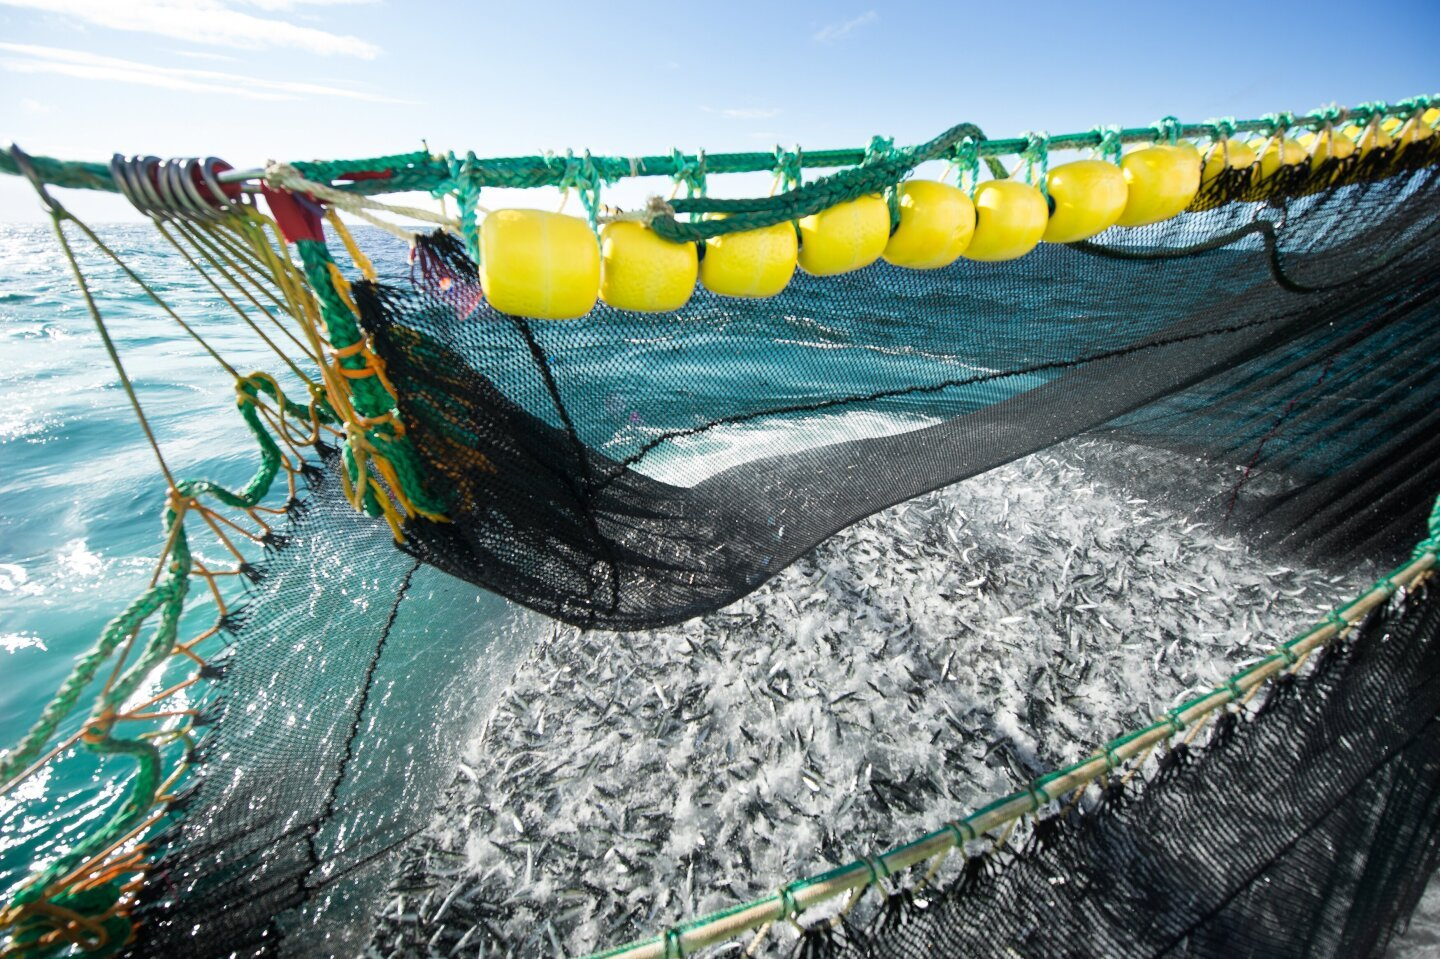 Responding to the 'Physical Science Basis for the Sixth Assessment Report from IPCC, Our Fish Calls on EU to End Overfishing